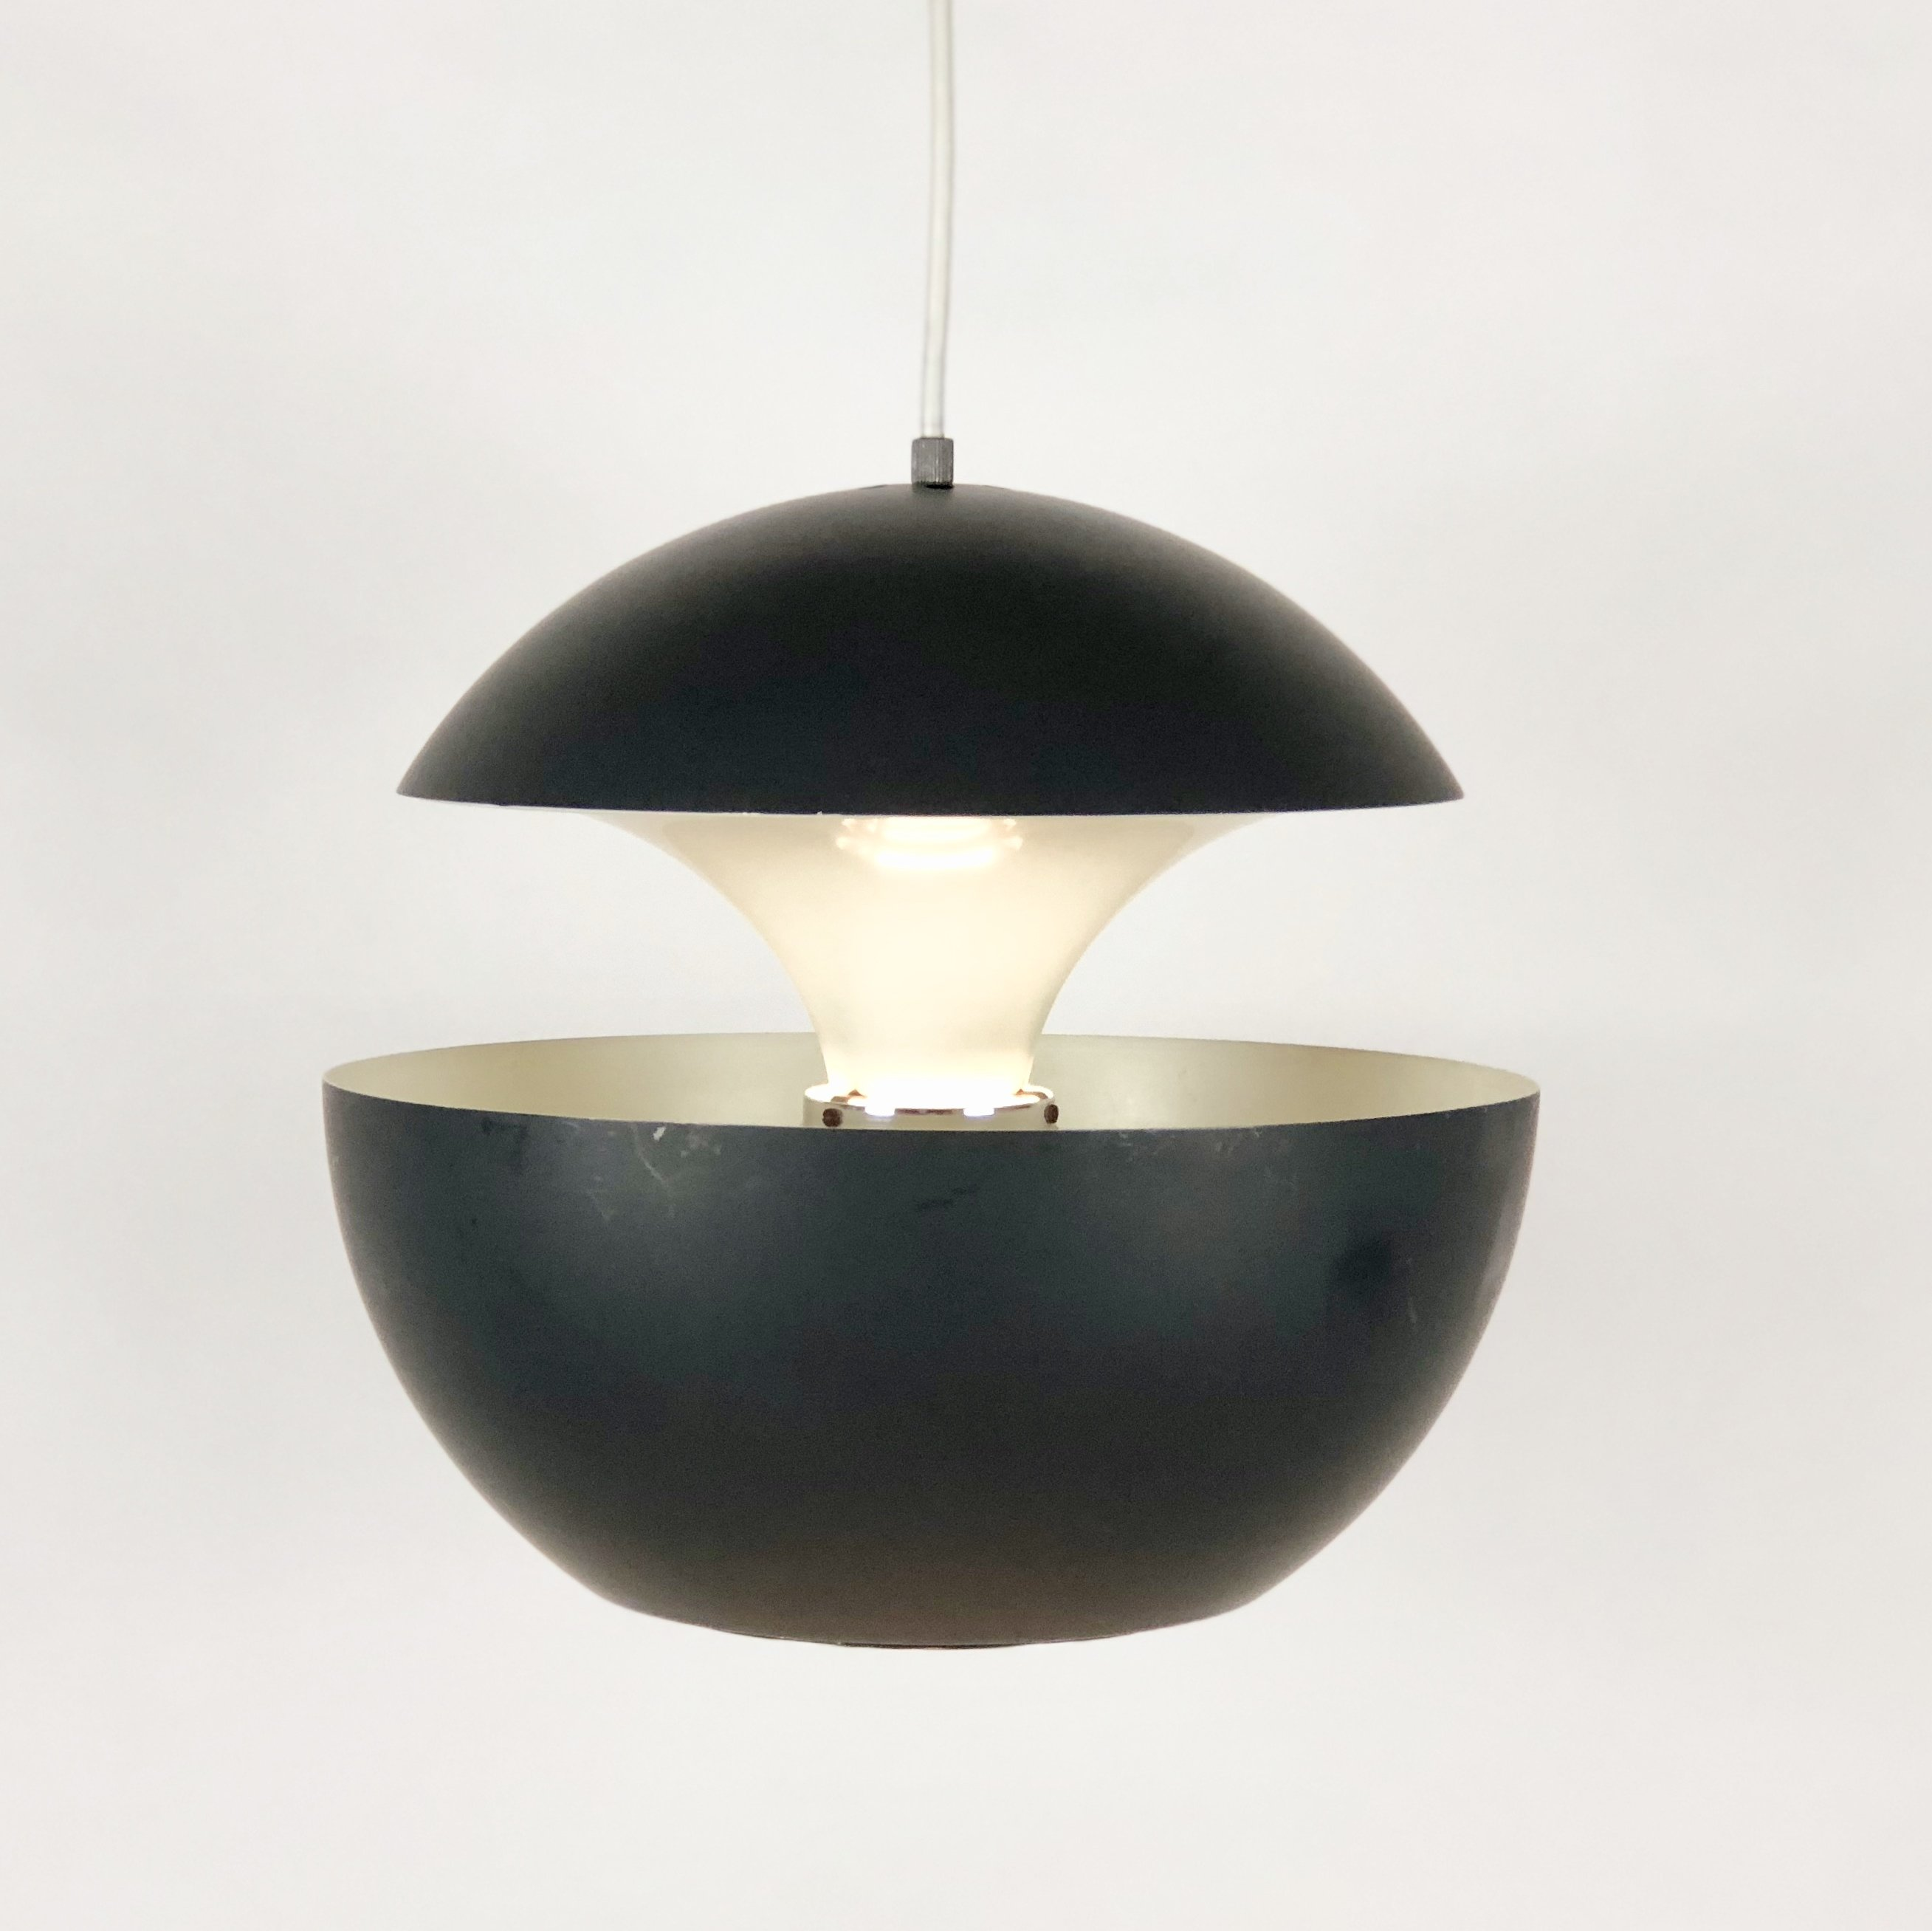 springfontein hanging lamp by bertrand balas for raak 87990